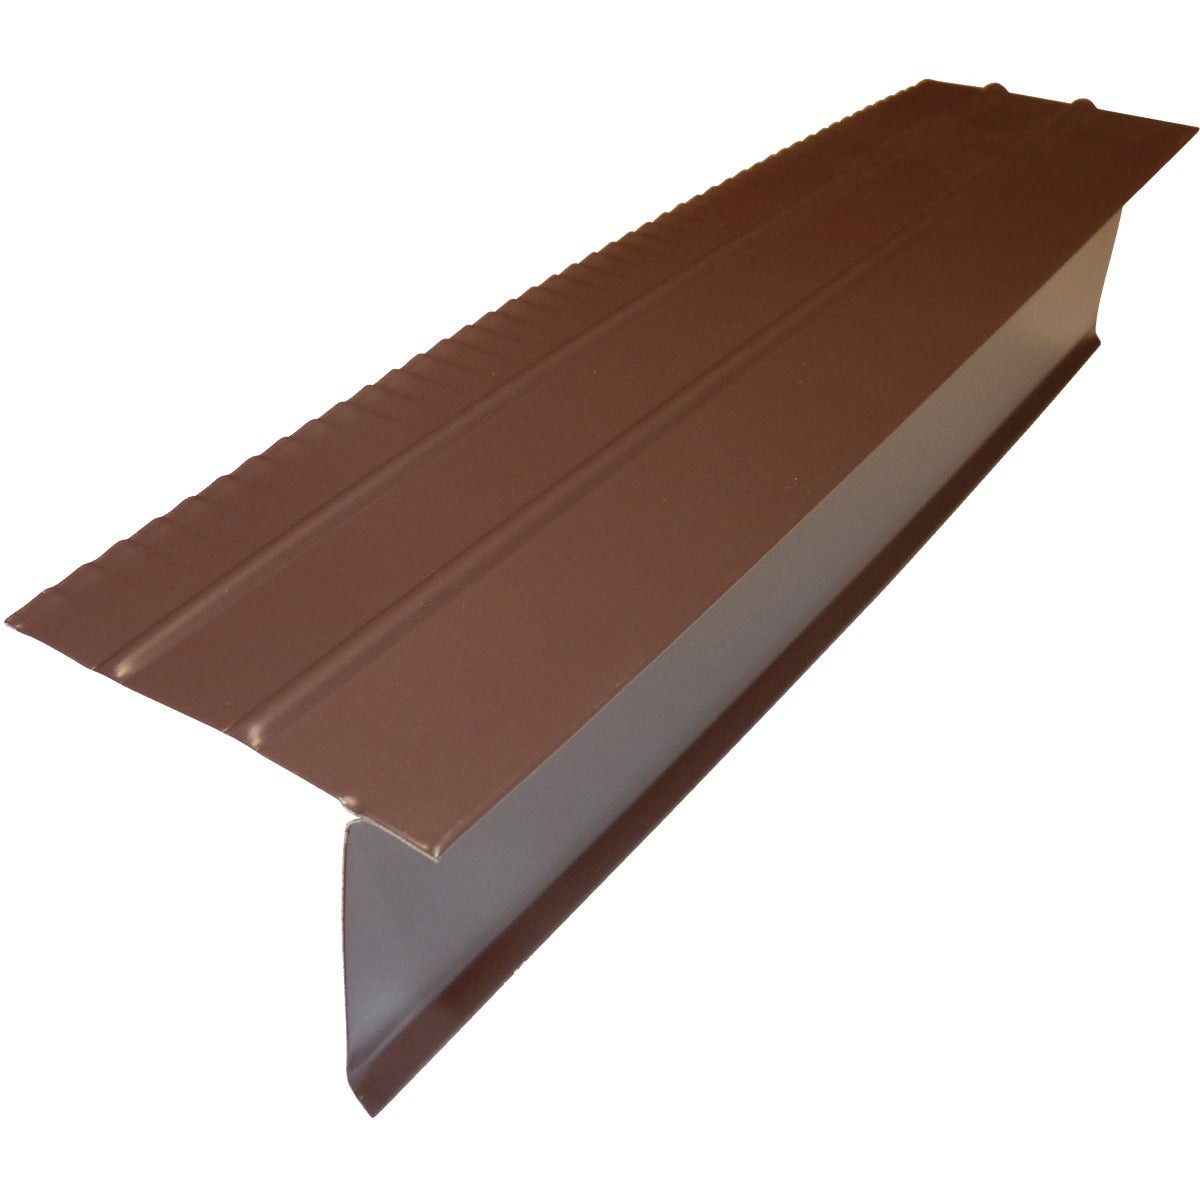 "5"" BRN ALUM DRIP EDGE - 5515519120 by Amerimax Home Prod"